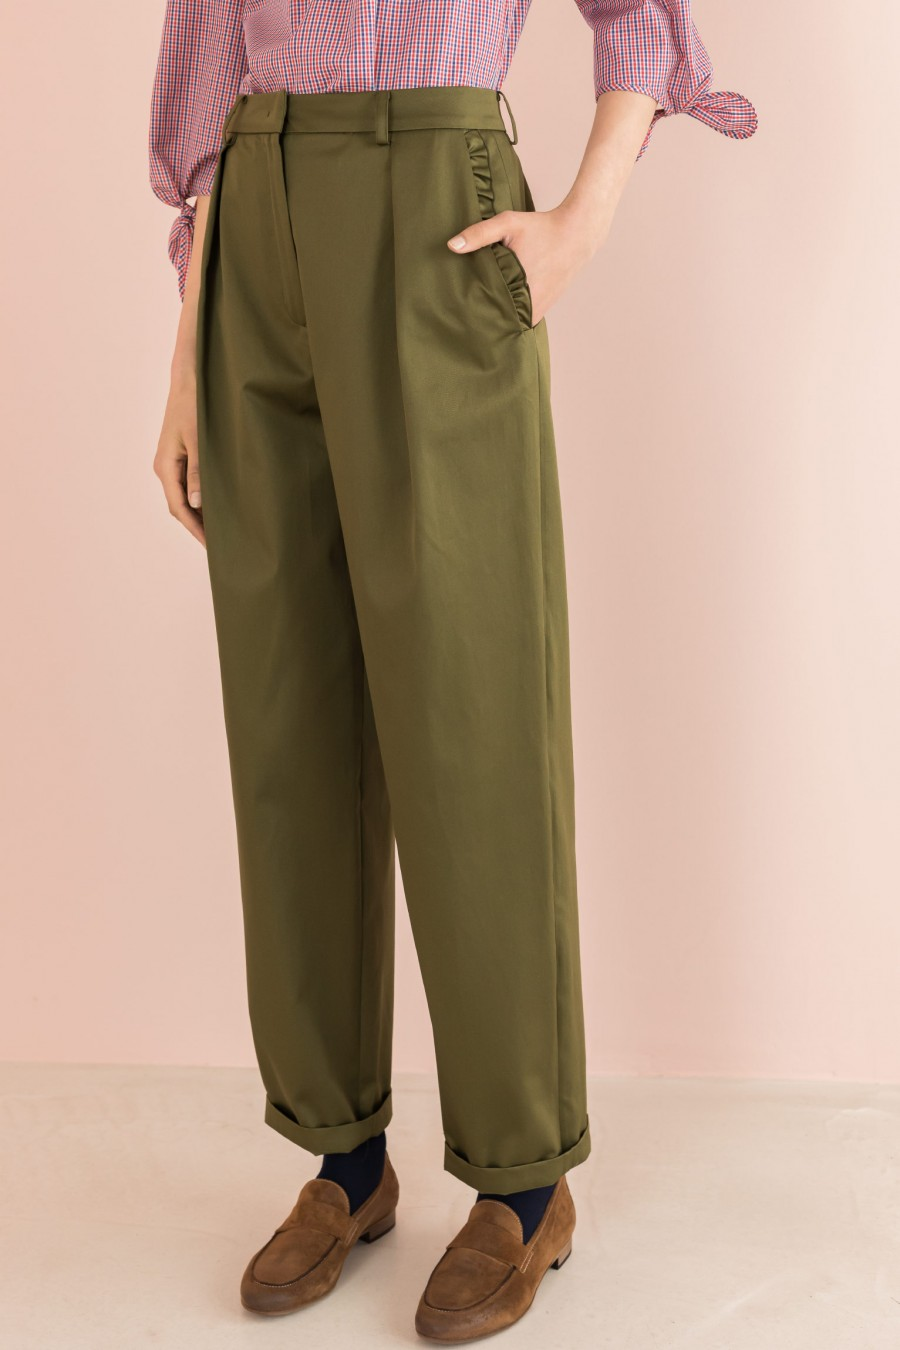 military egg-shaped trousers